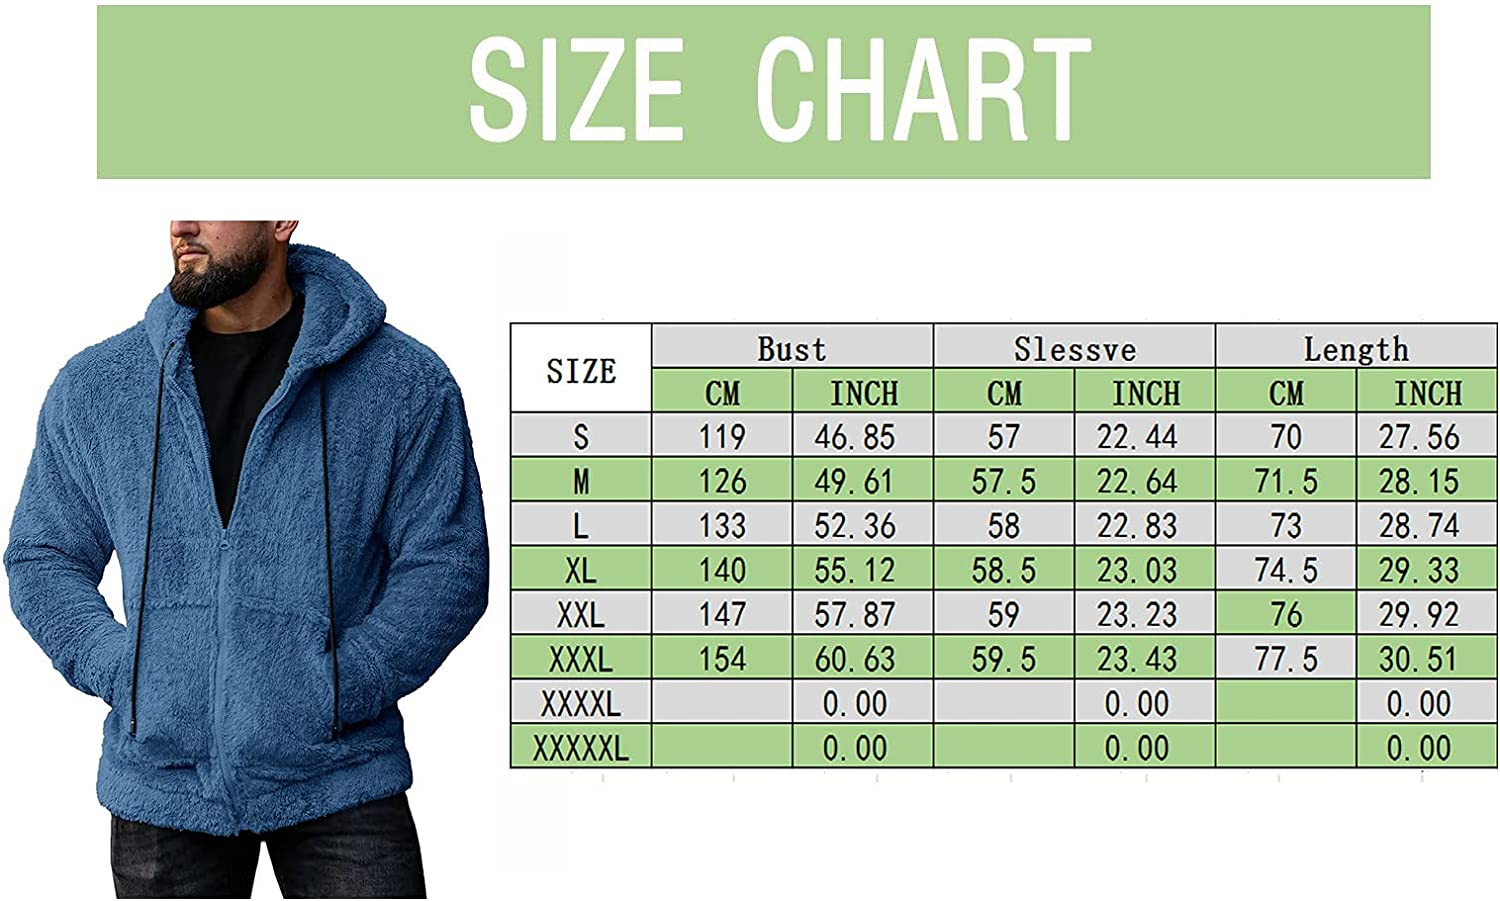 XXBR Fuzzy Sherpa Pullover for Mens, Front Placket Button Stand Collar Fluffy Cozy Fall Winter Warm Fleece Sweater